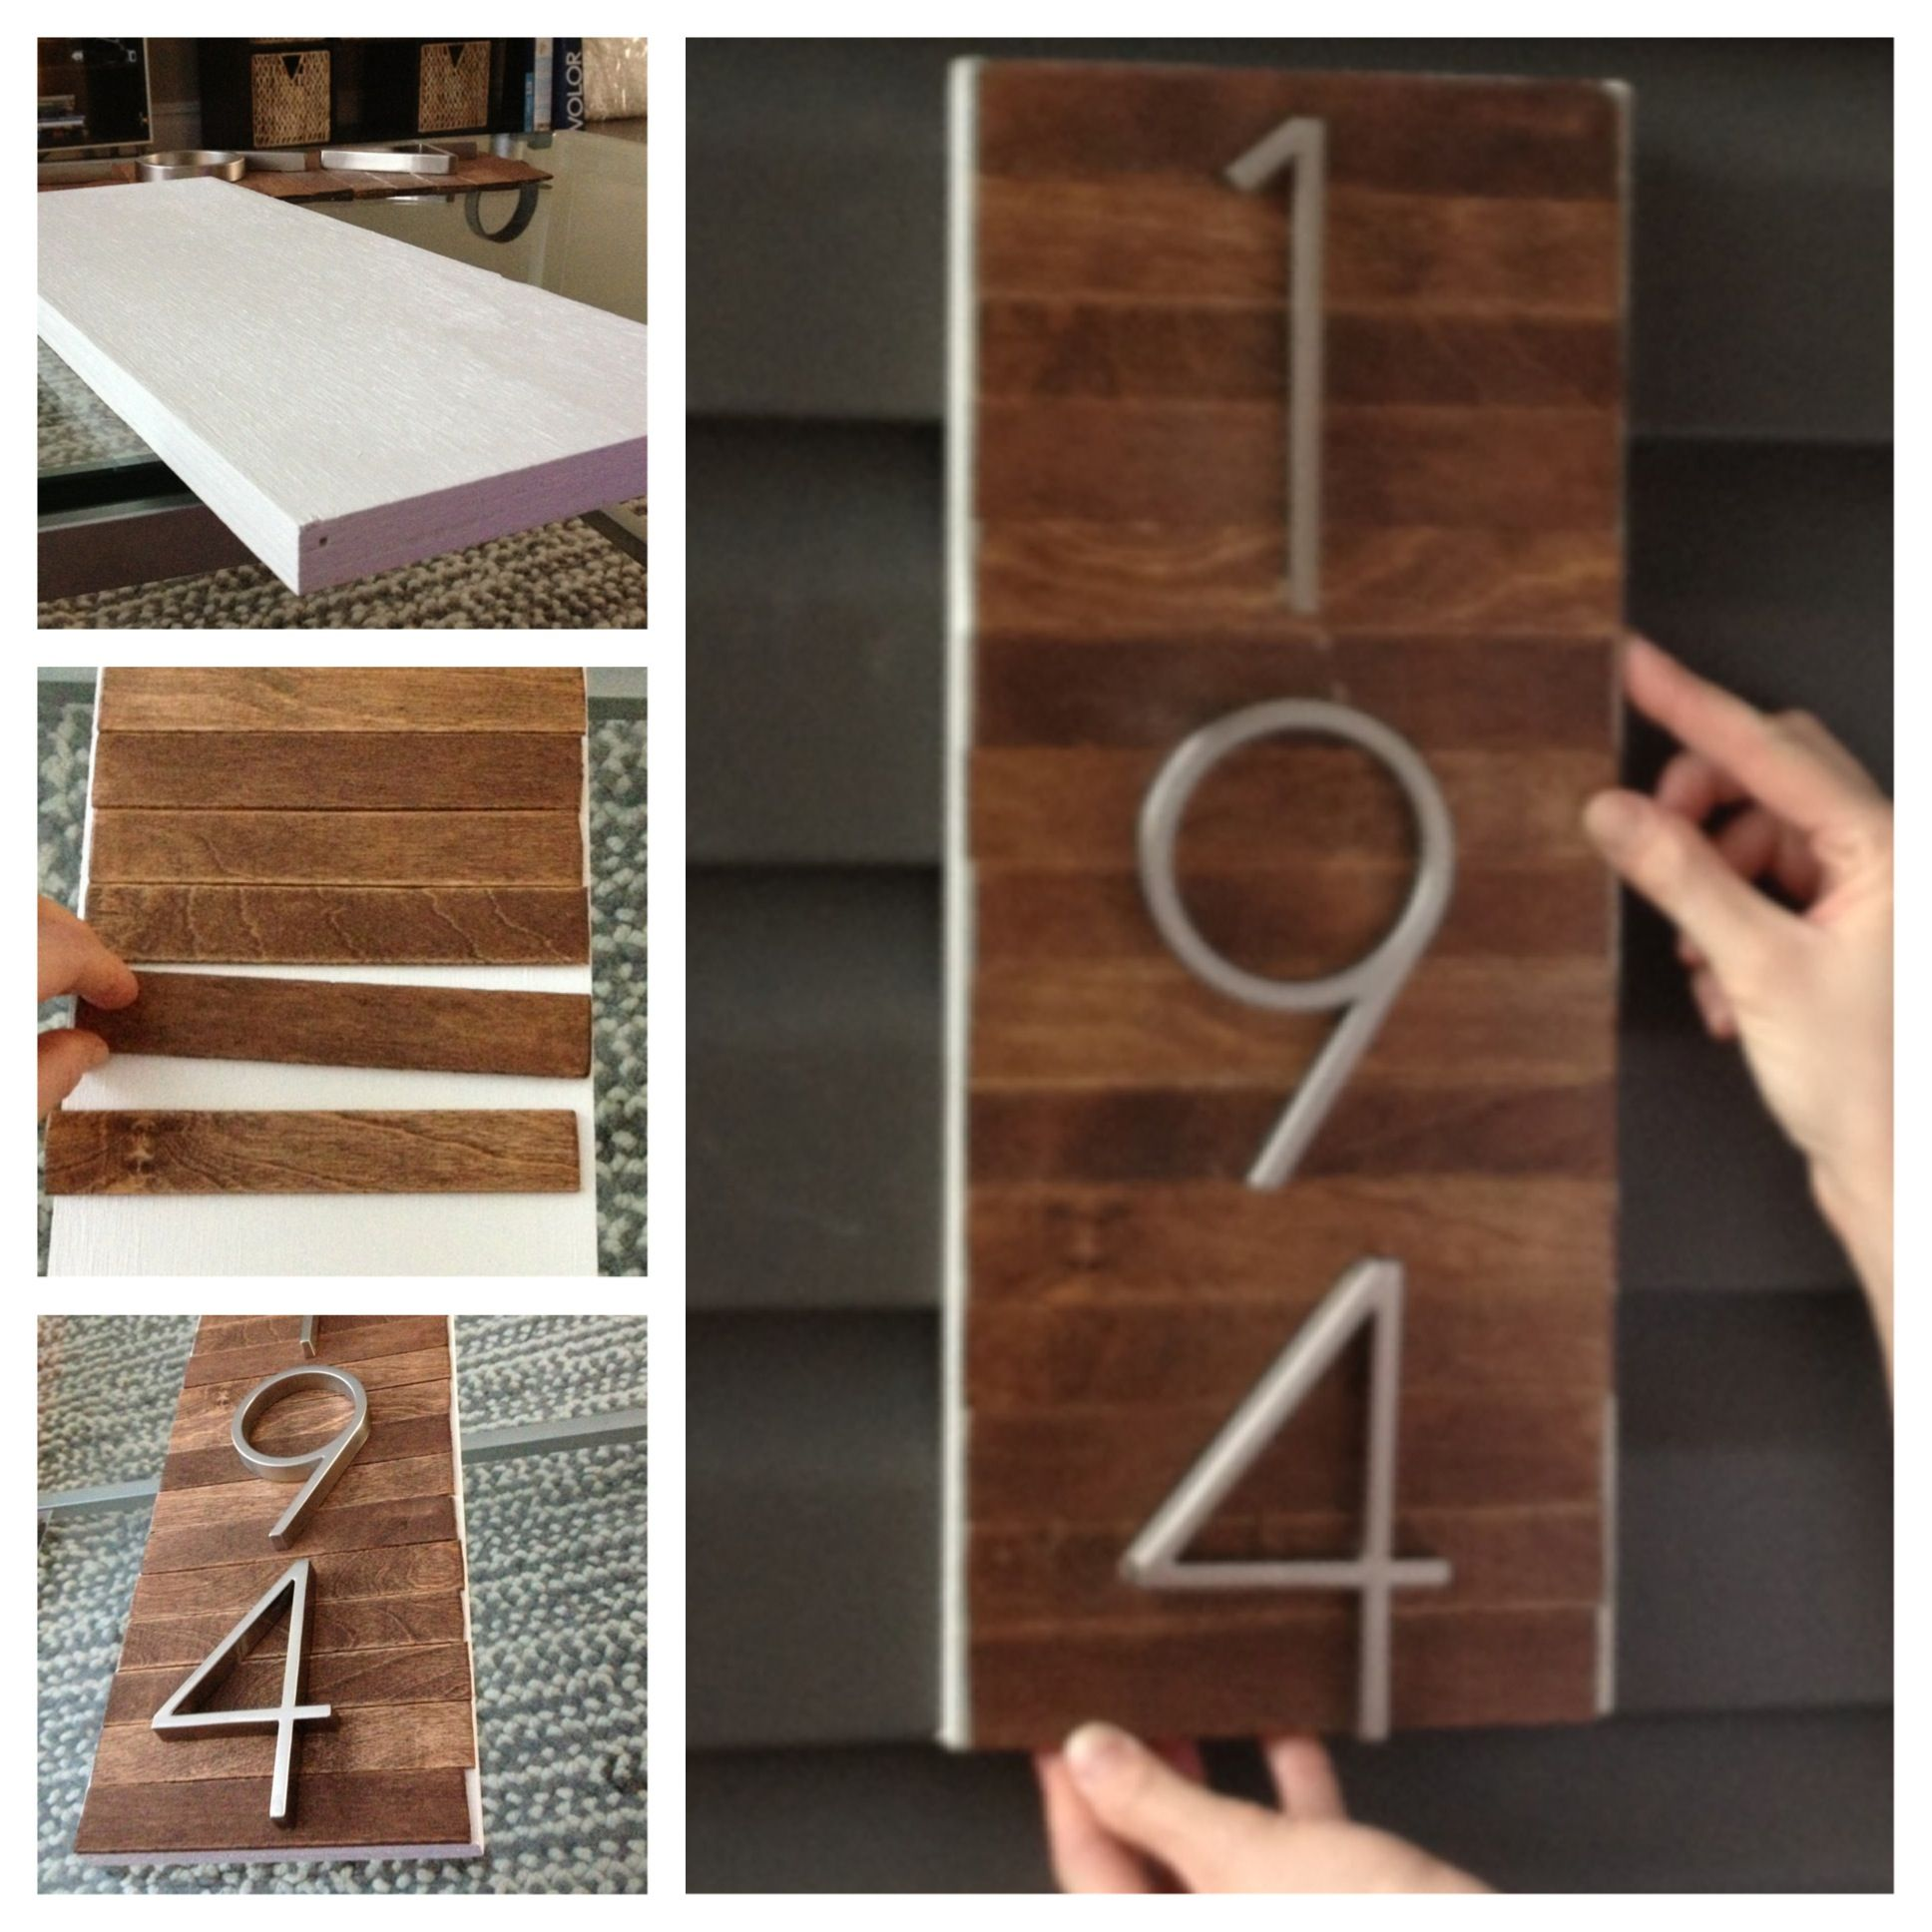 WE Could Put Pretty Numbers On A Beautiful Board DIY House Number